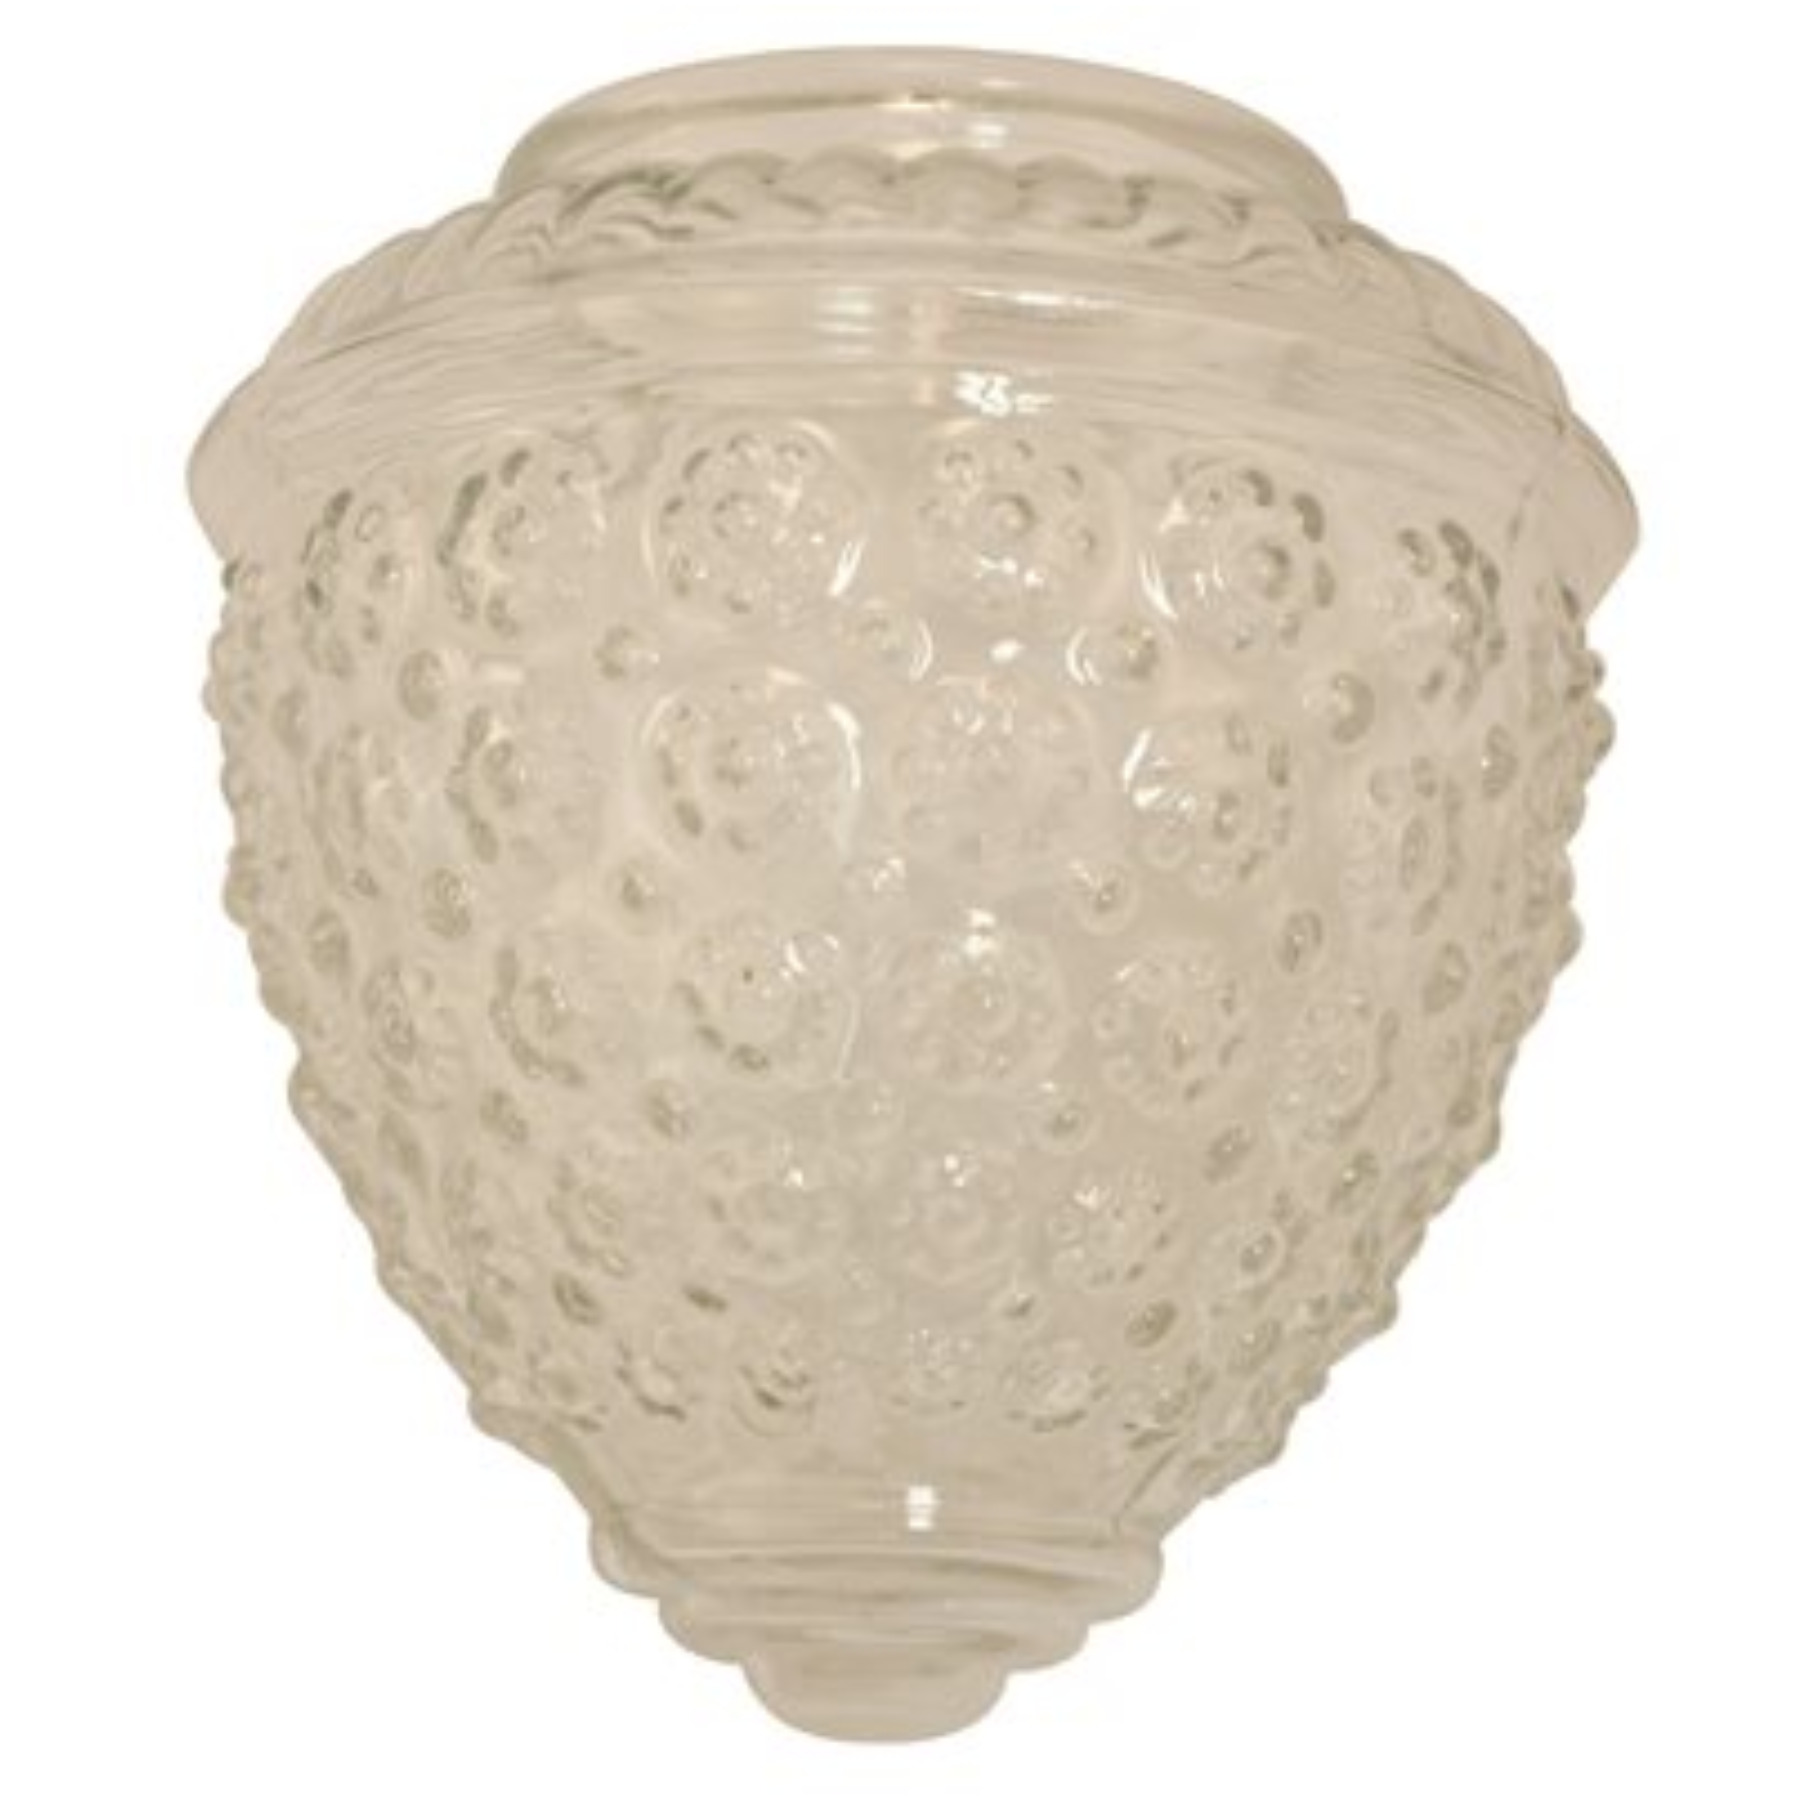 ROYAL COVE� ACORN GLOBE LIGHT FIXTURE REPLACEMENT GLASS, CLEAR, 5-1/2 X 5-1/2 IN., 3-1/4 IN. FITTER